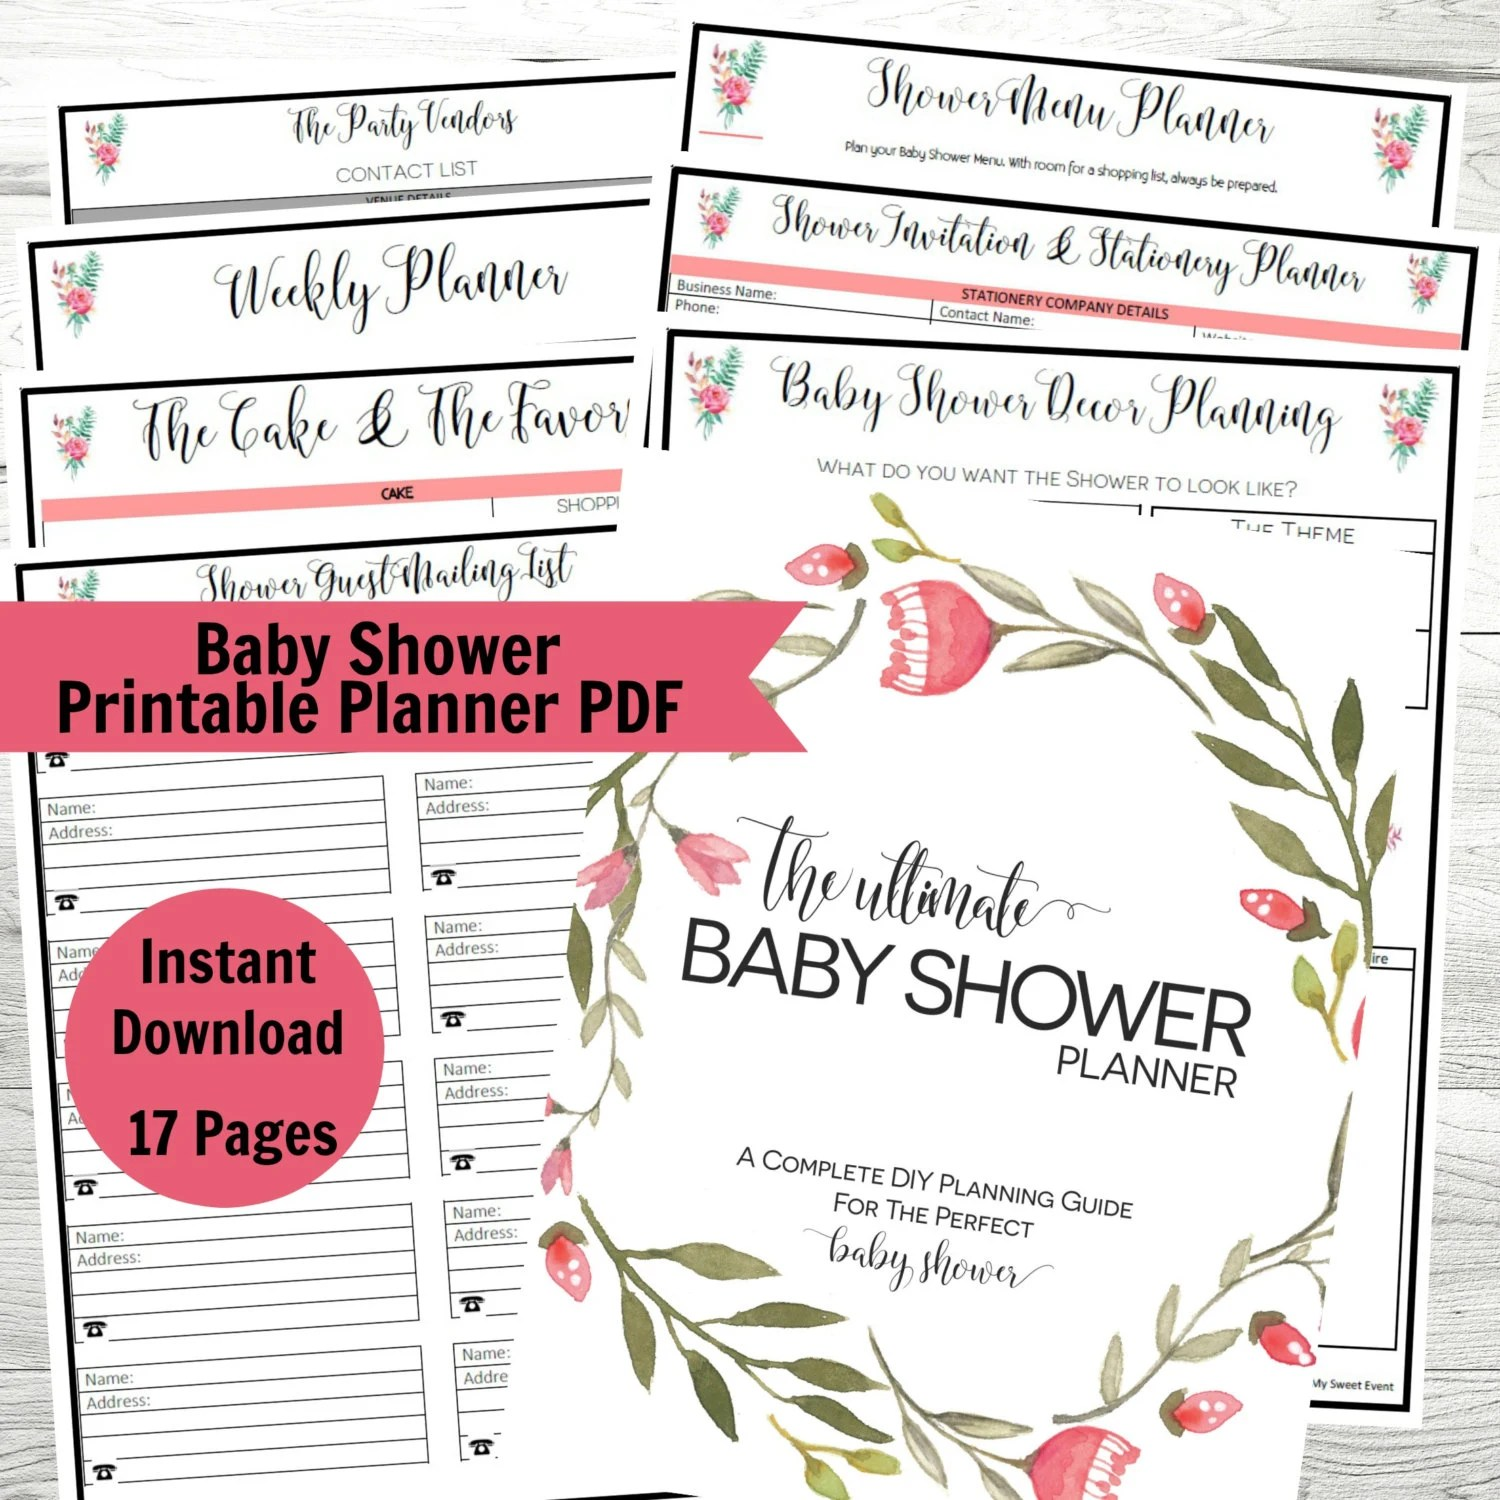 Baby Shower Planner Printable Baby Shower PDF Party Planner Etsy